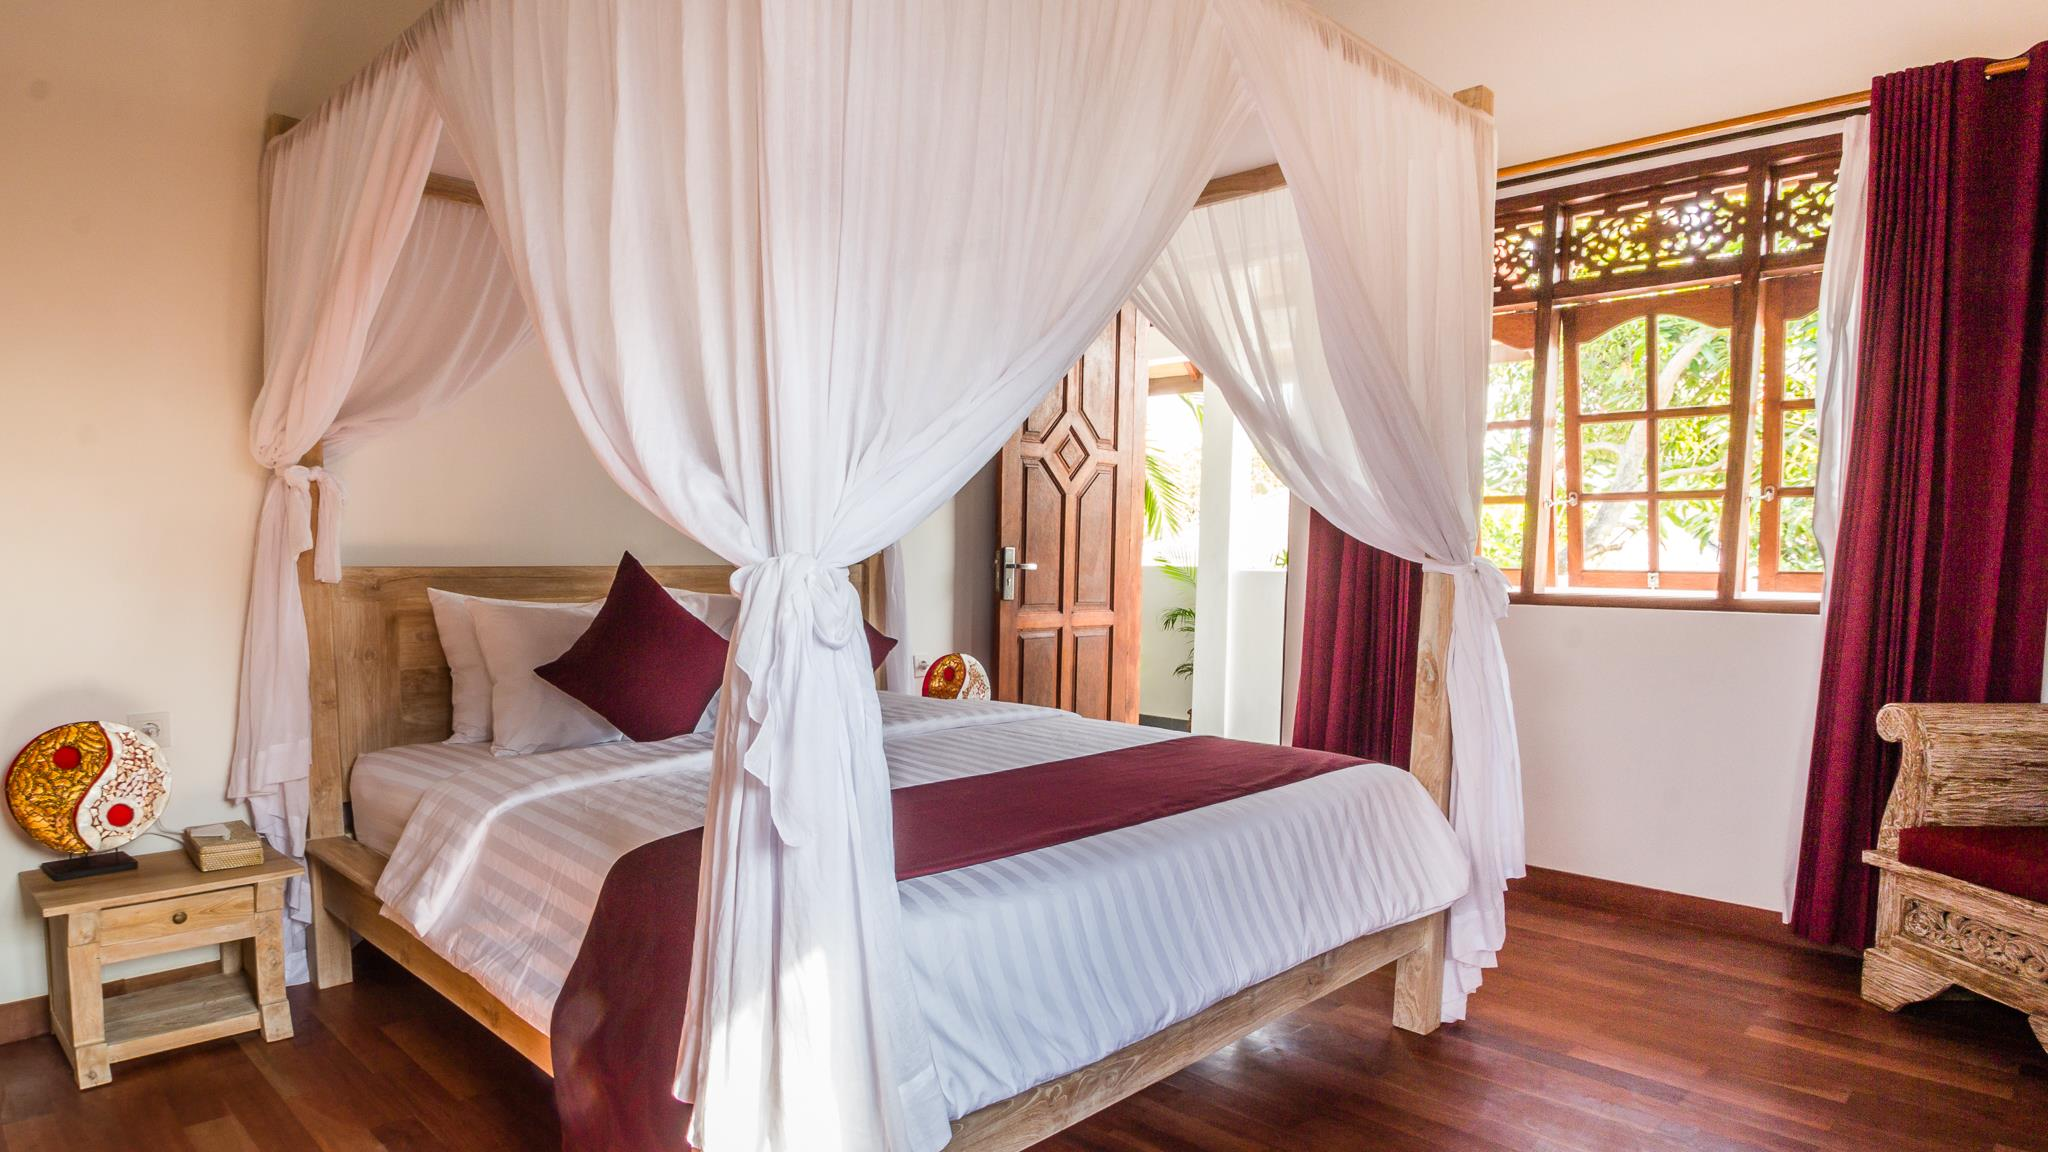 Bedroom with Wooden Floor - Villa Bewa - Seminyak, Bali